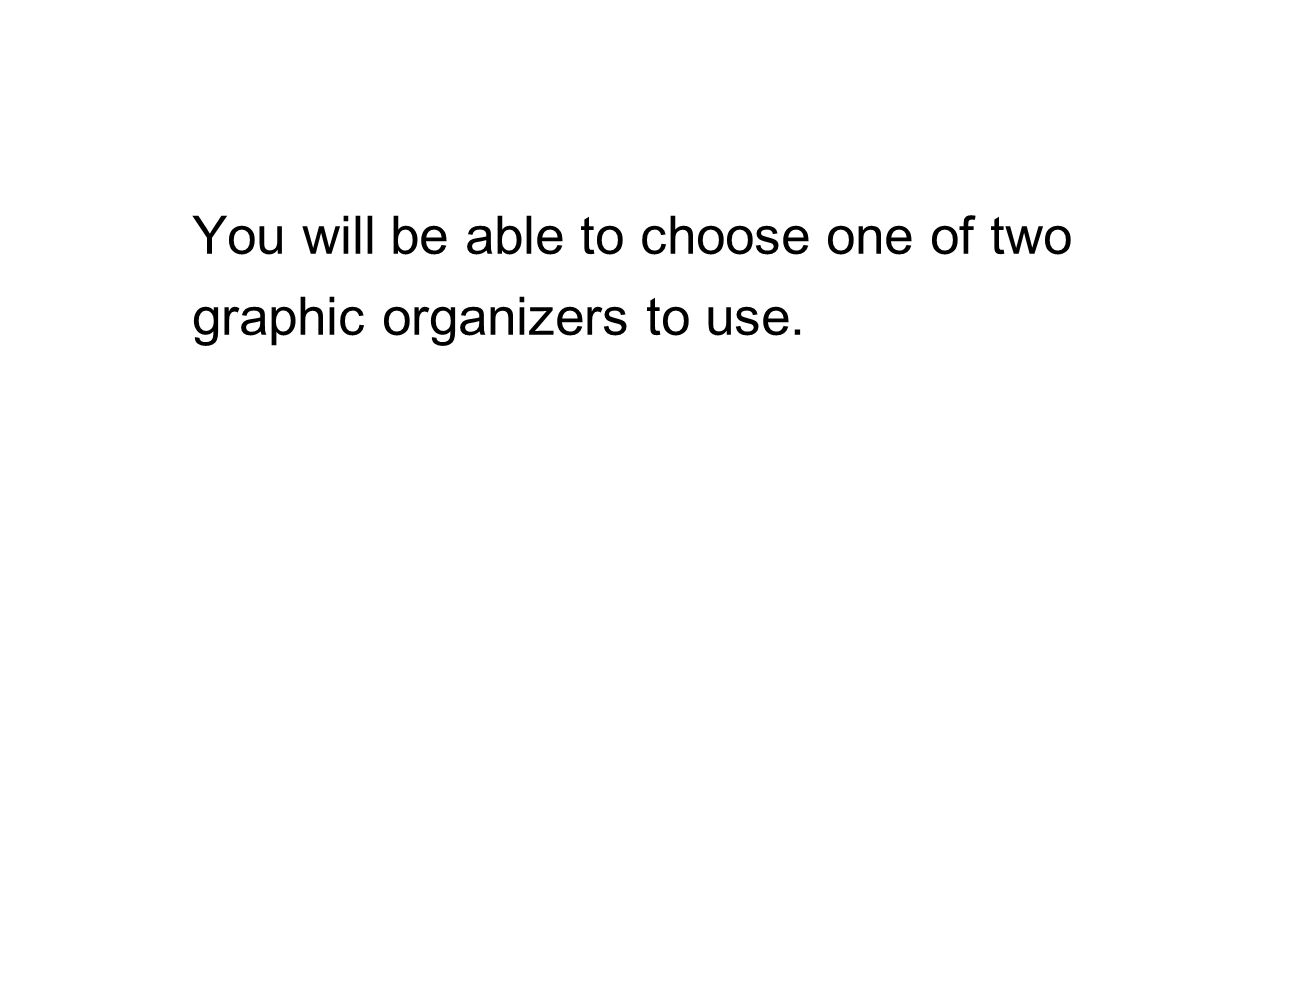 You will be able to choose one of two graphic organizers to use.